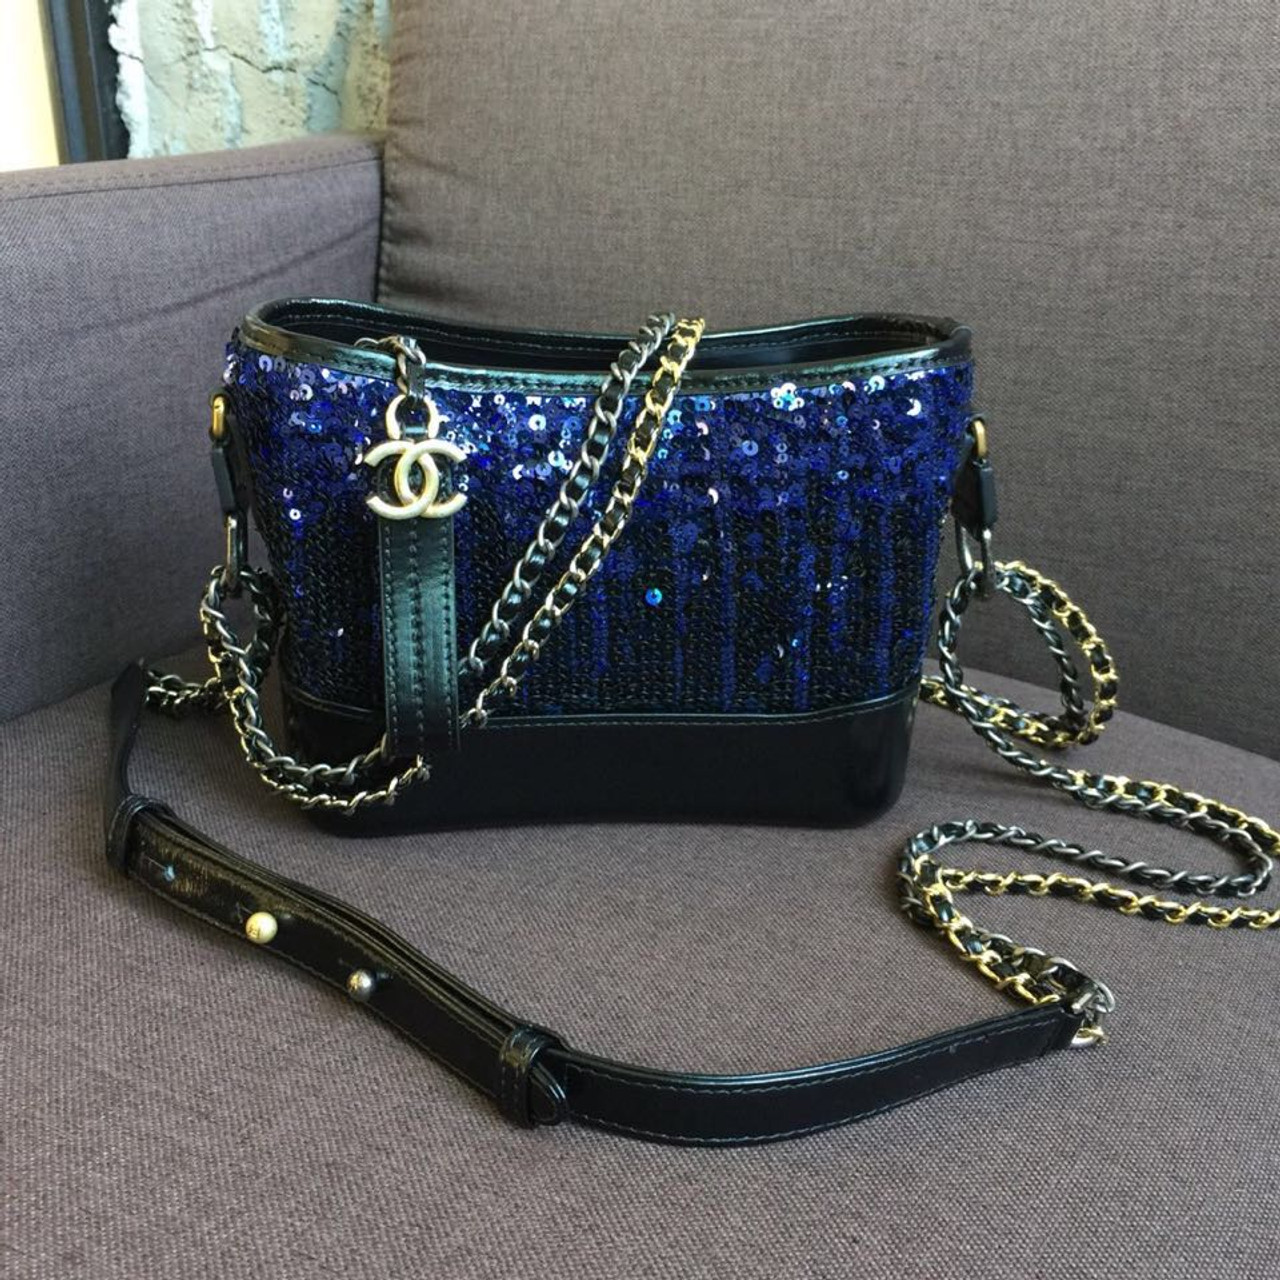 dd5d18b4ee6a4d Chanel Sequins Gabrielle Small Hobo Bag 20cm Gold Hardware Lambskin Leather  Fall/Winter Act 1